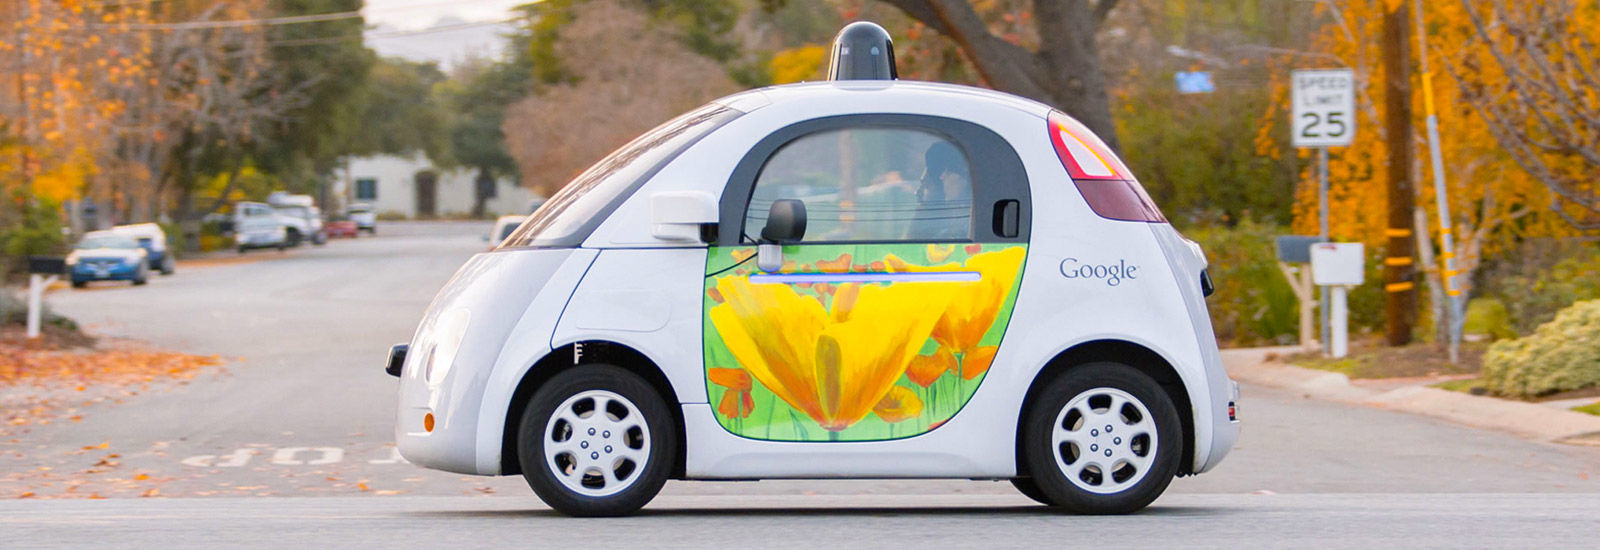 google-self-driving-car-side-4